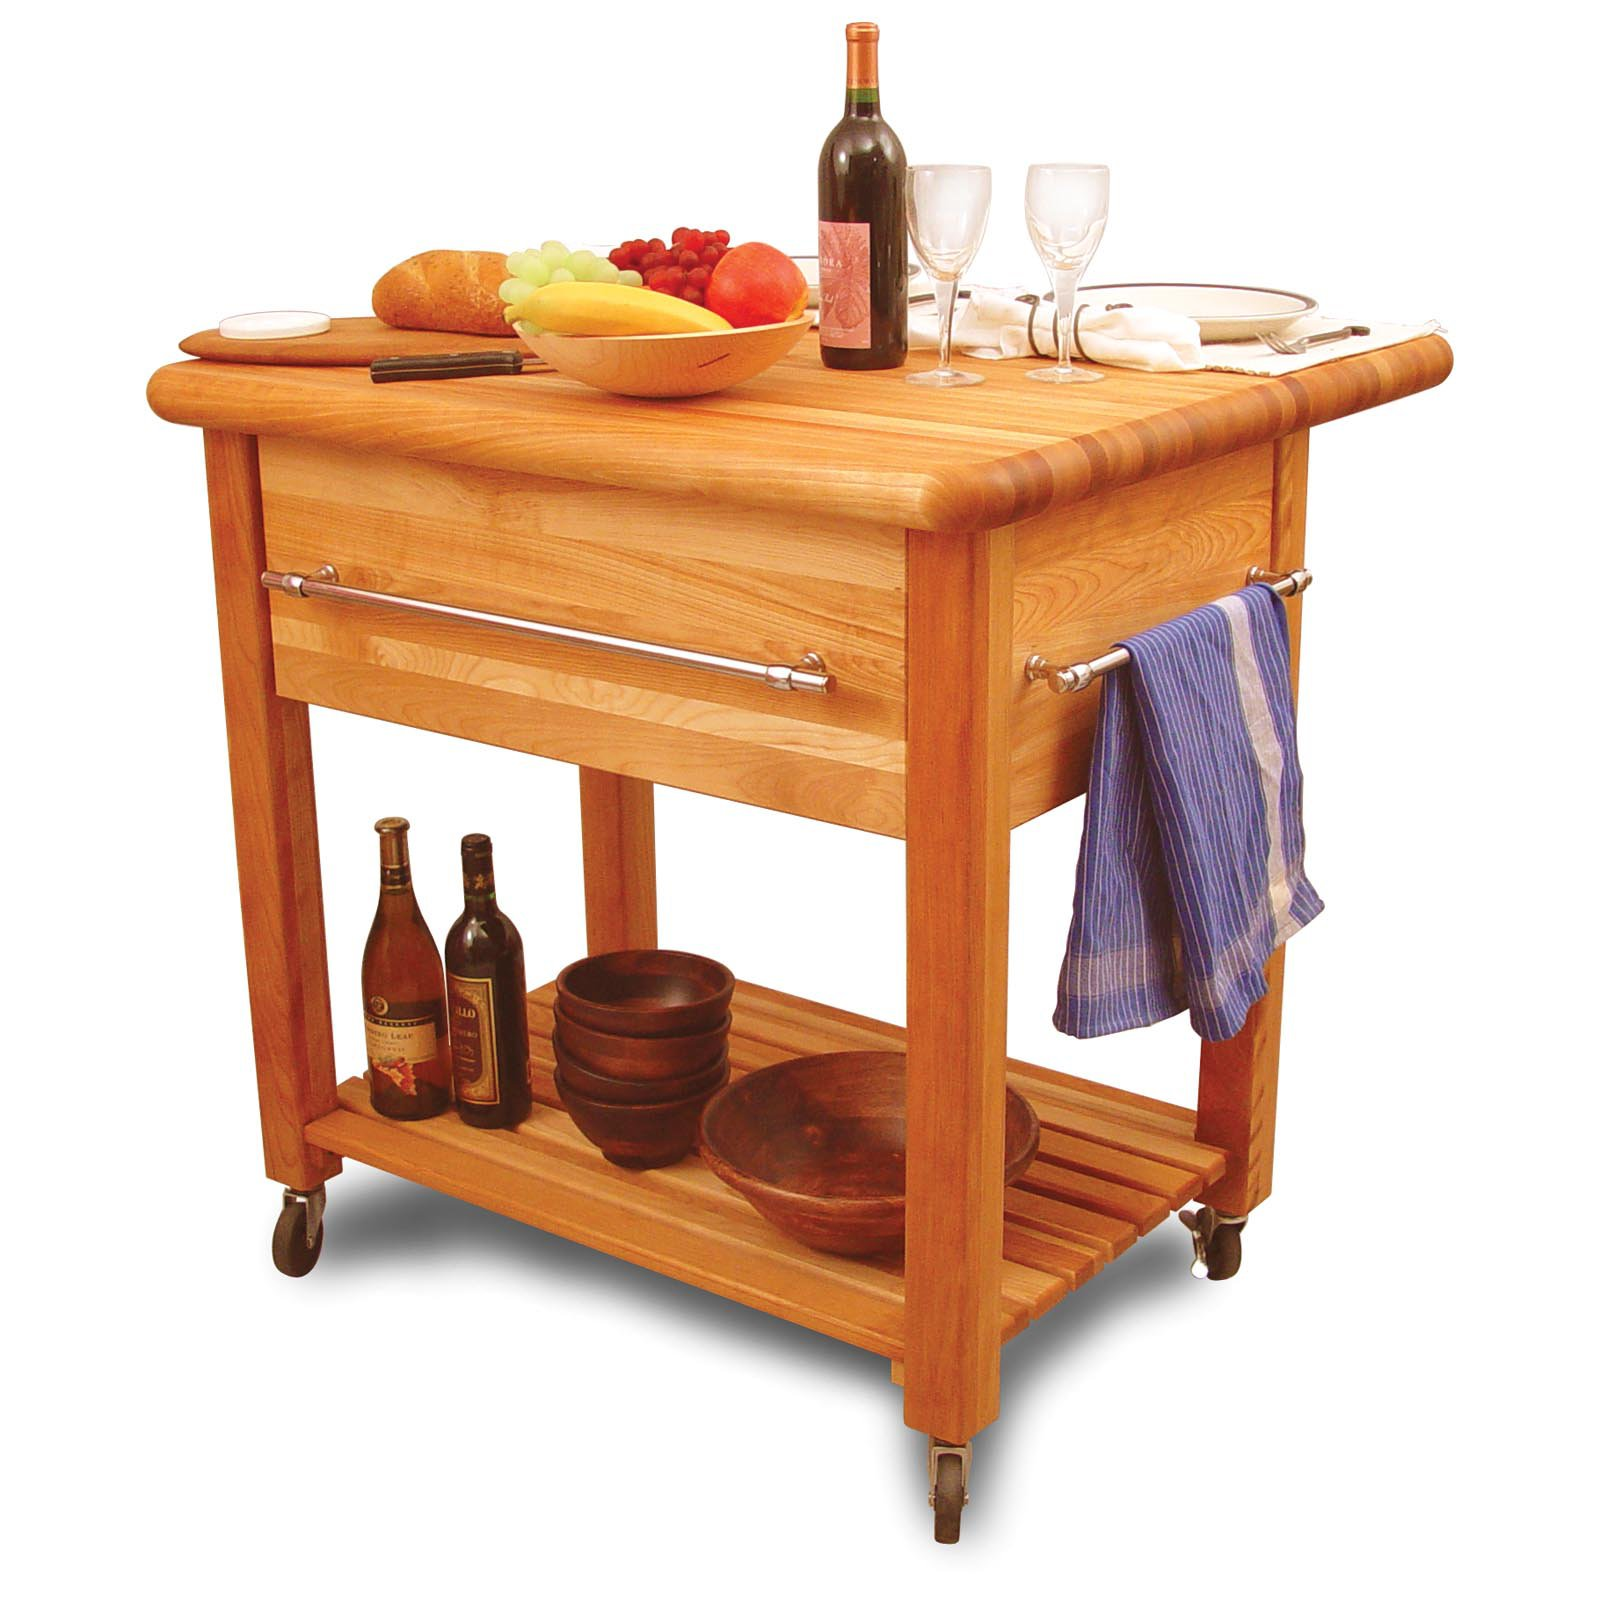 Grand Kitchen Island Workcenter - 8 in. Drop Leaf